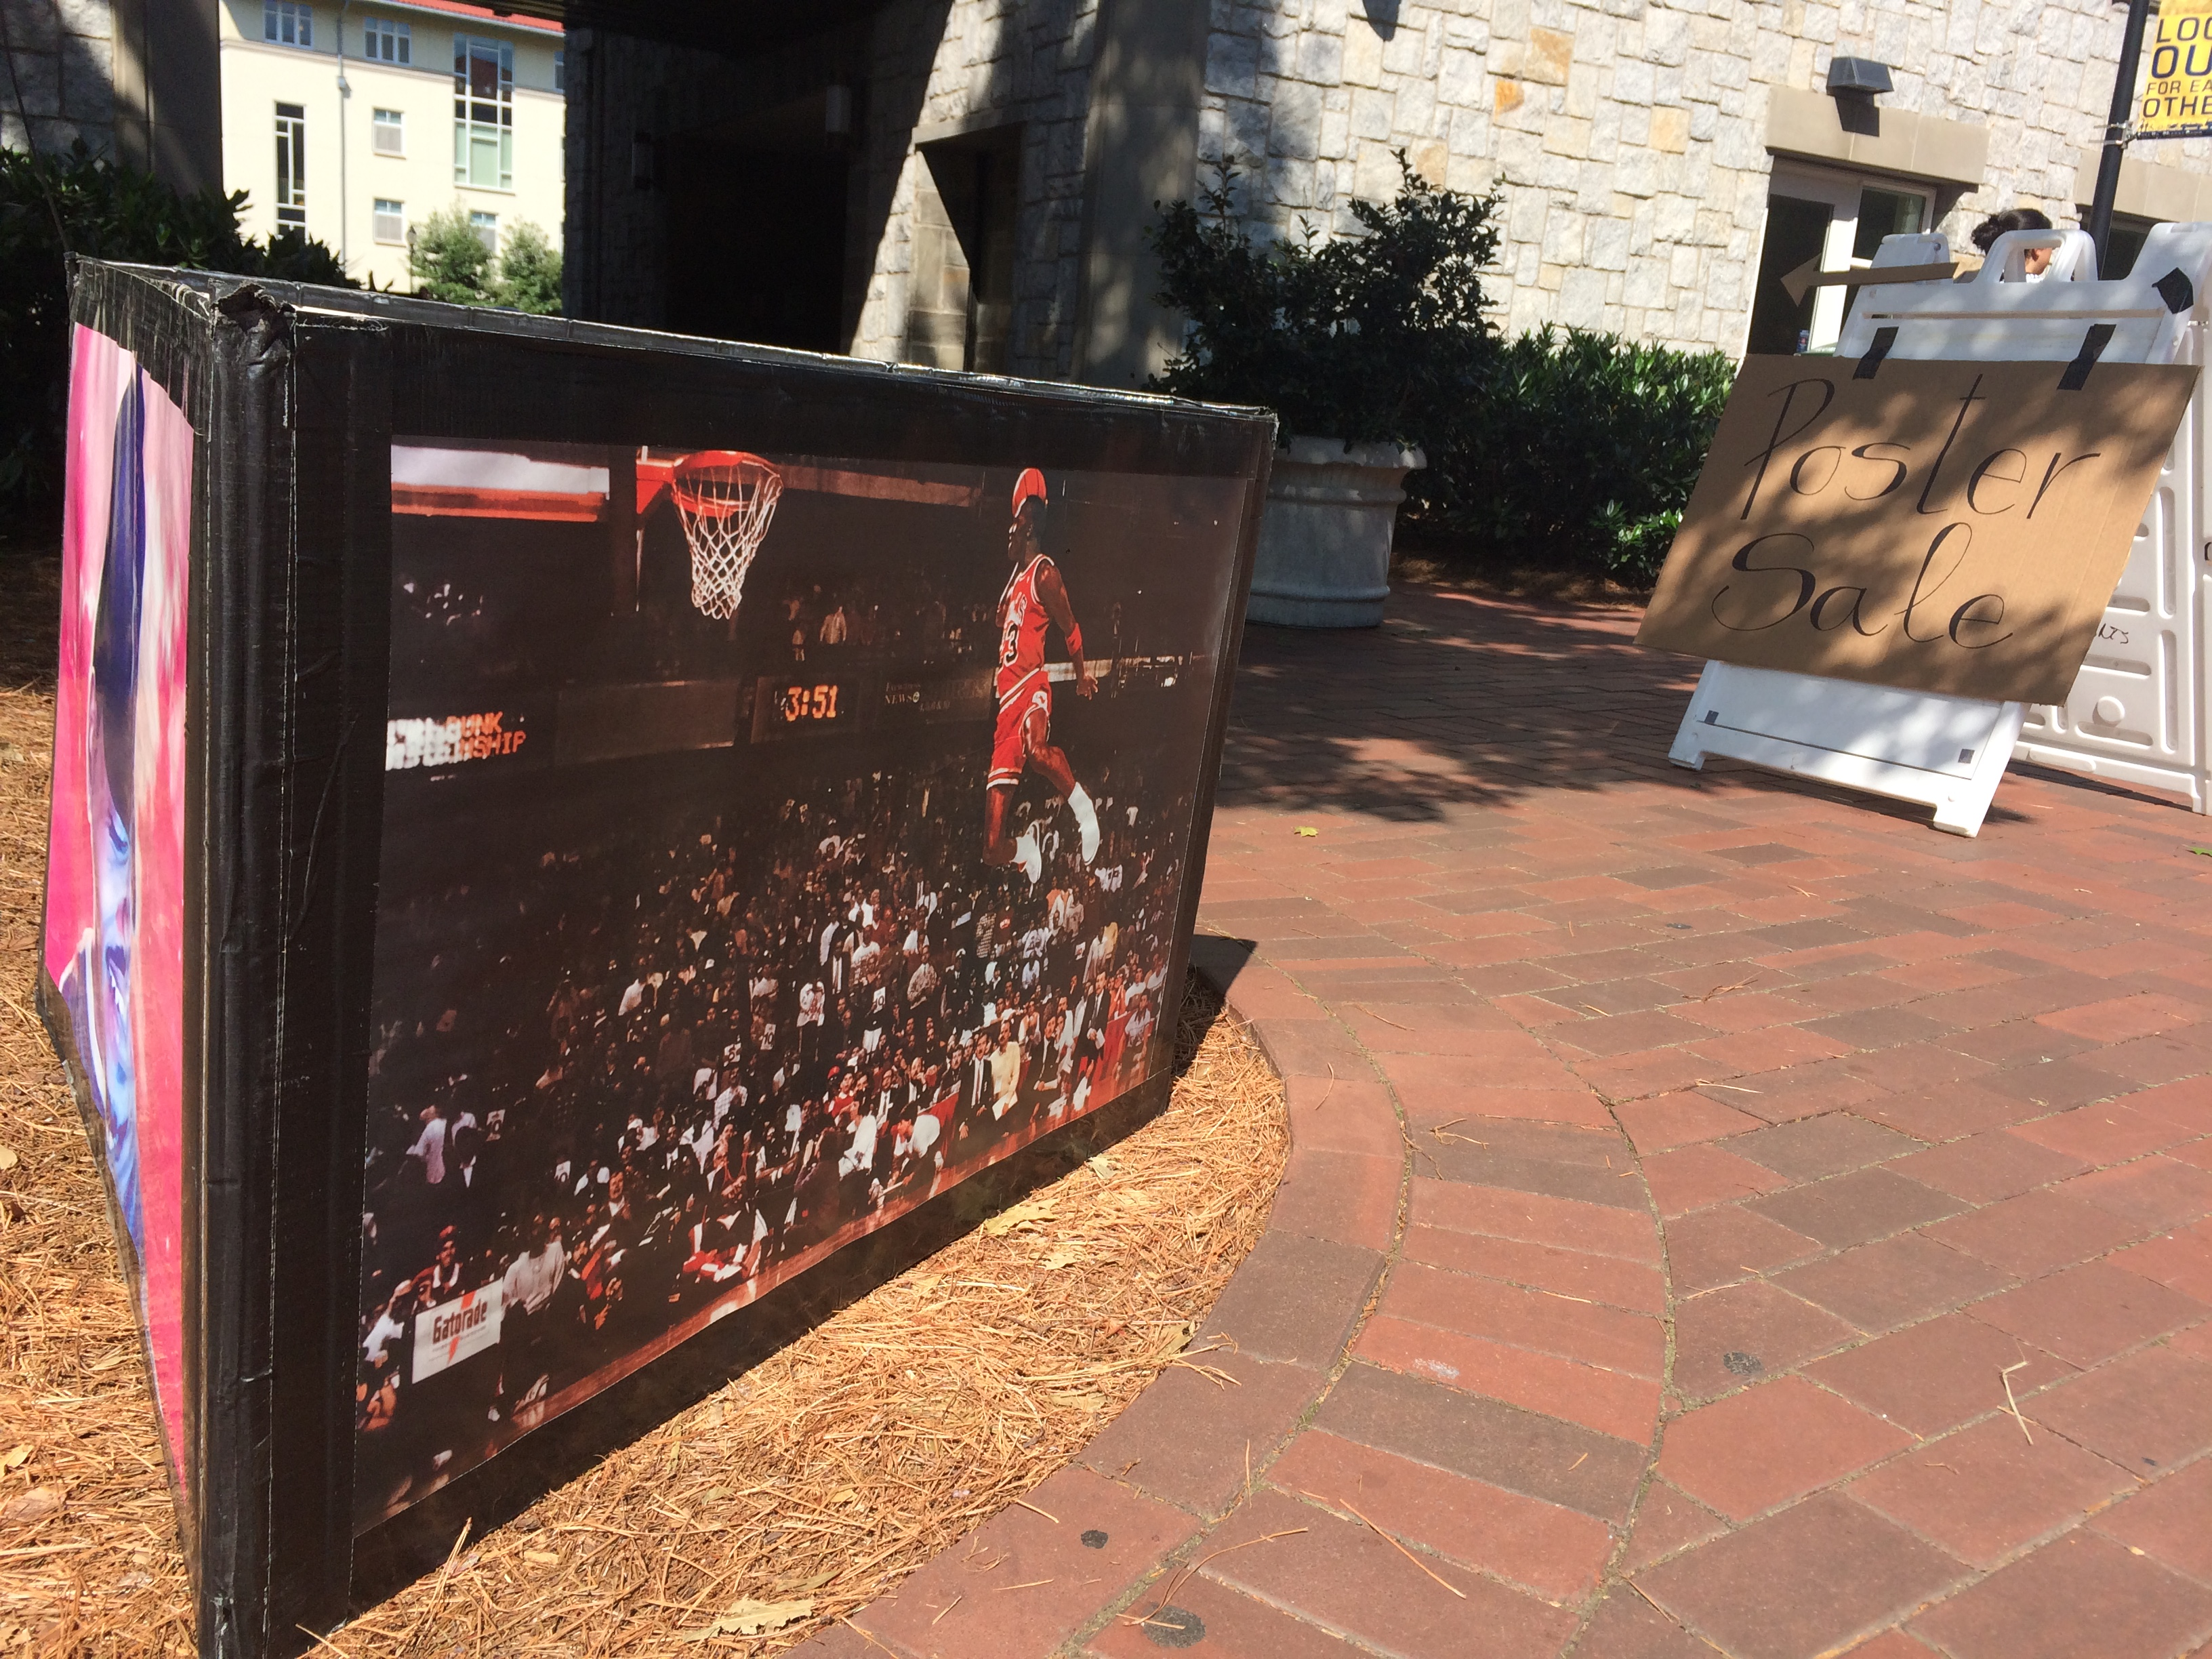 Poster display on campus showing Michale Jordan